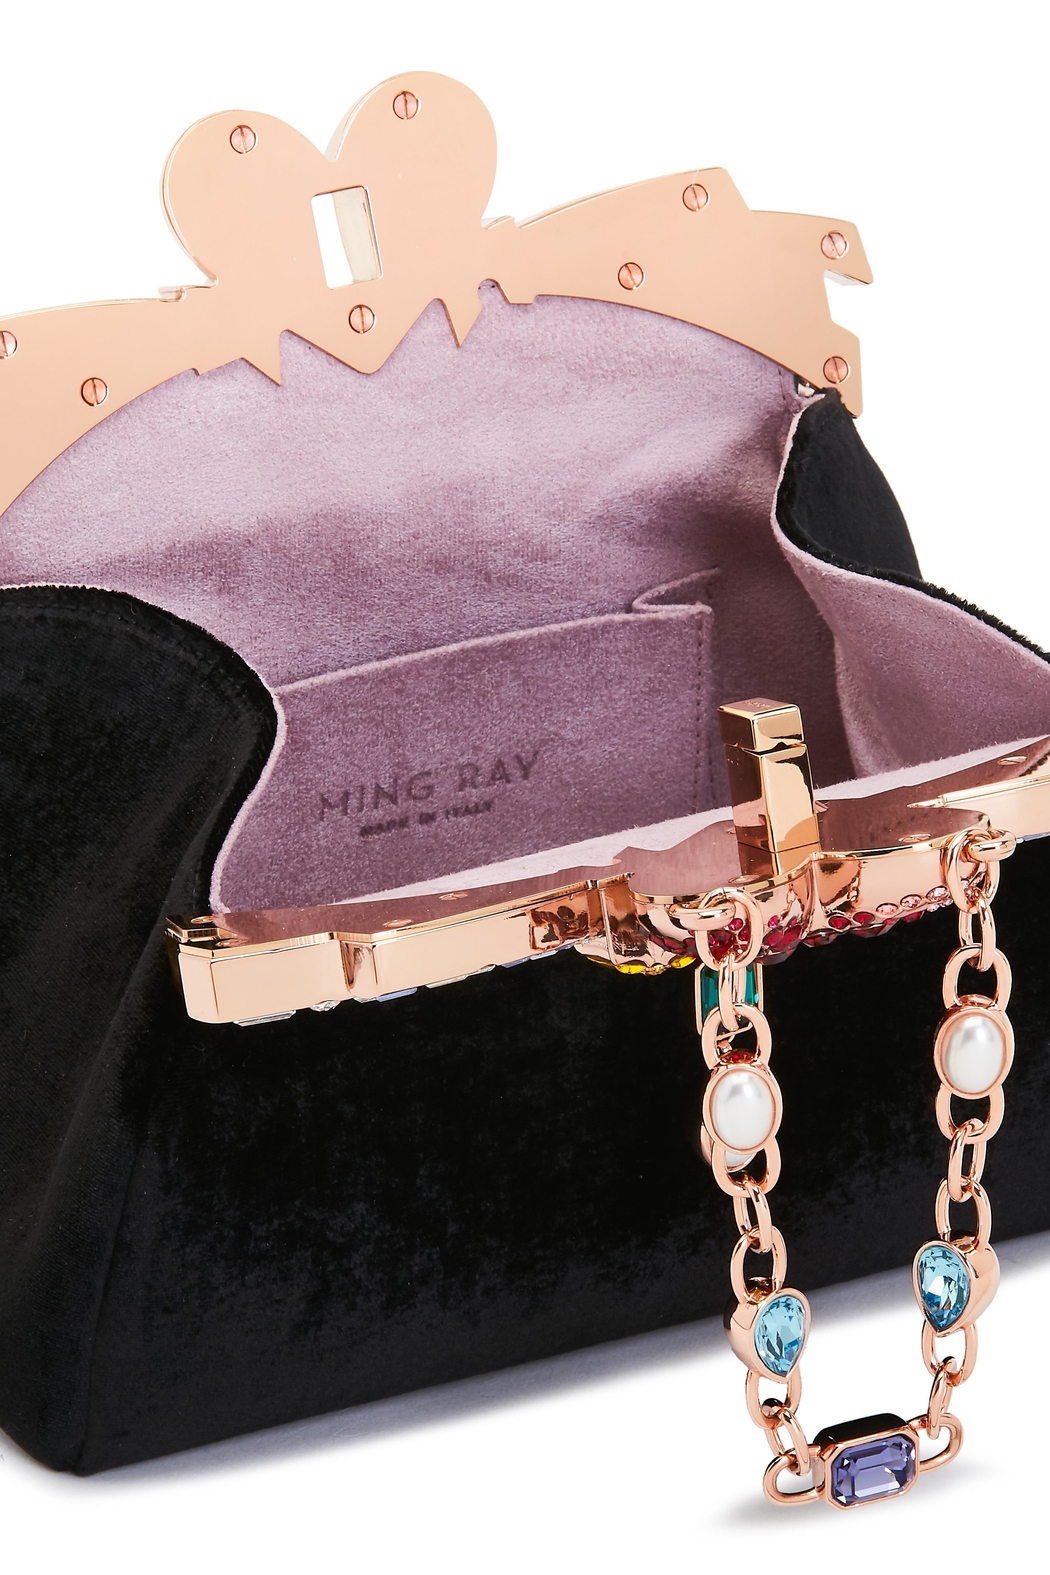 Ming Ray Mingray Black Clutch - Front Full Image